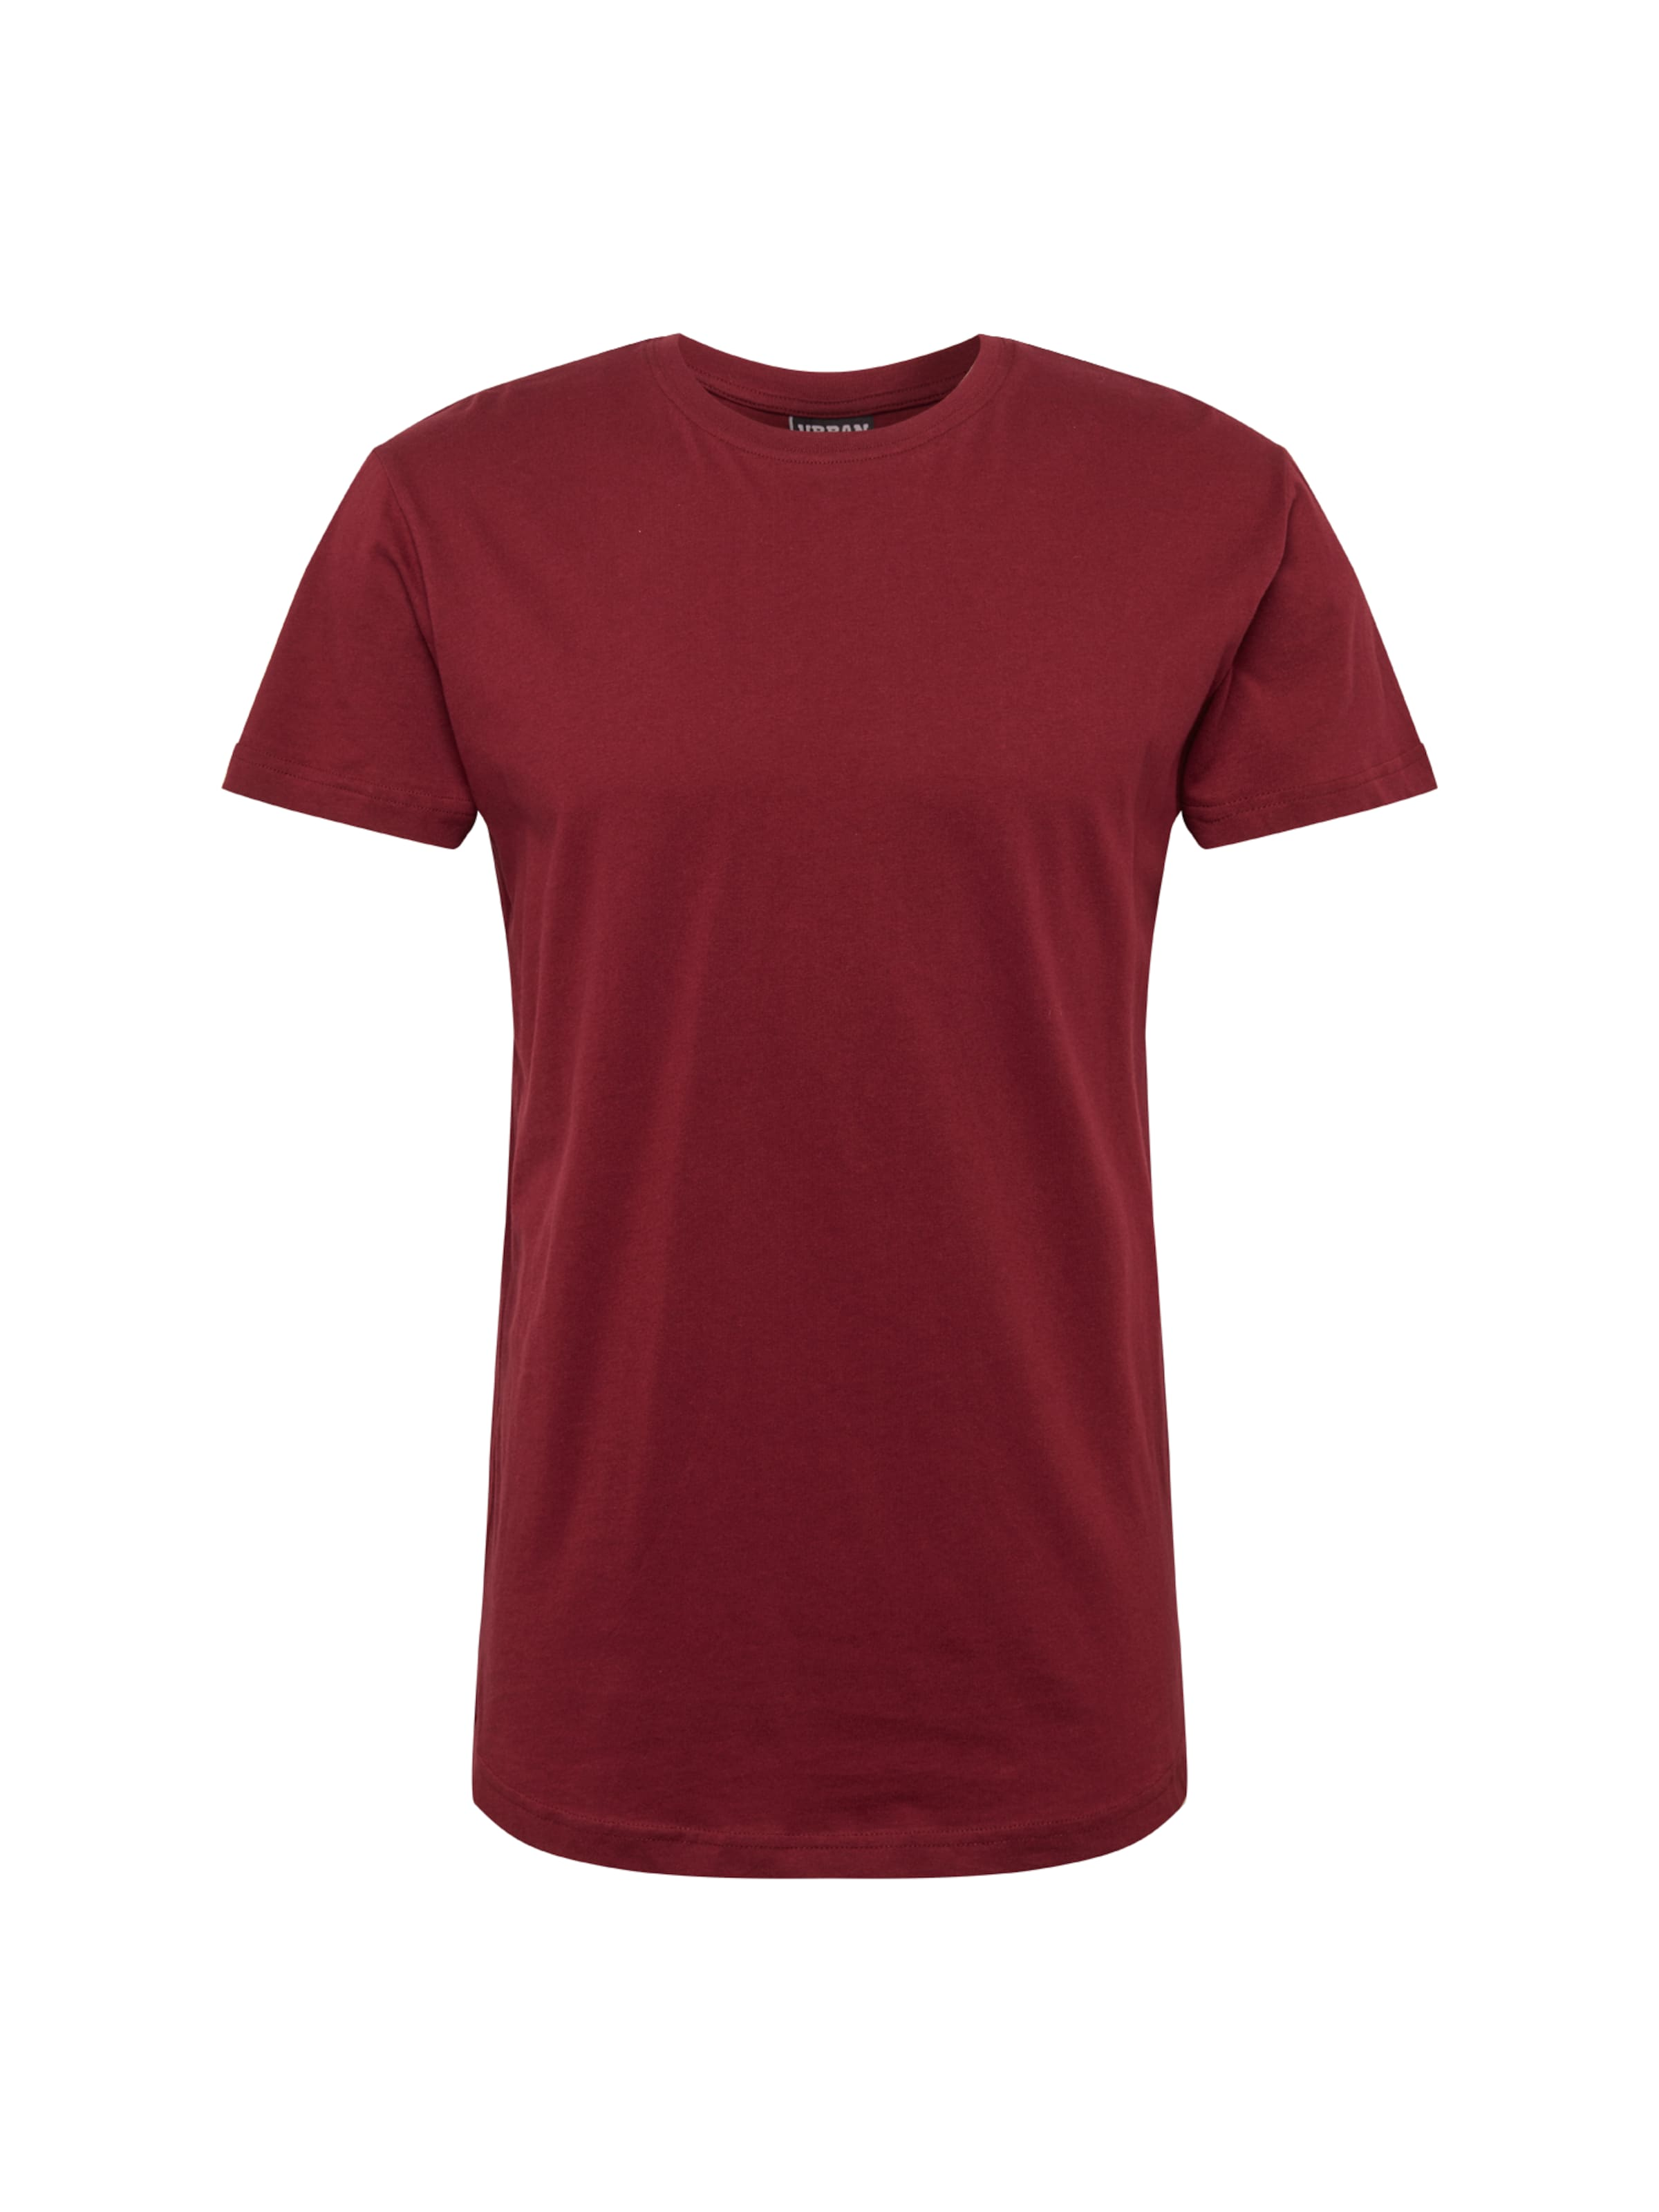 shirt Long Classics 'shaped T Tee' In Urban Bordeaux SzVpLqUMG